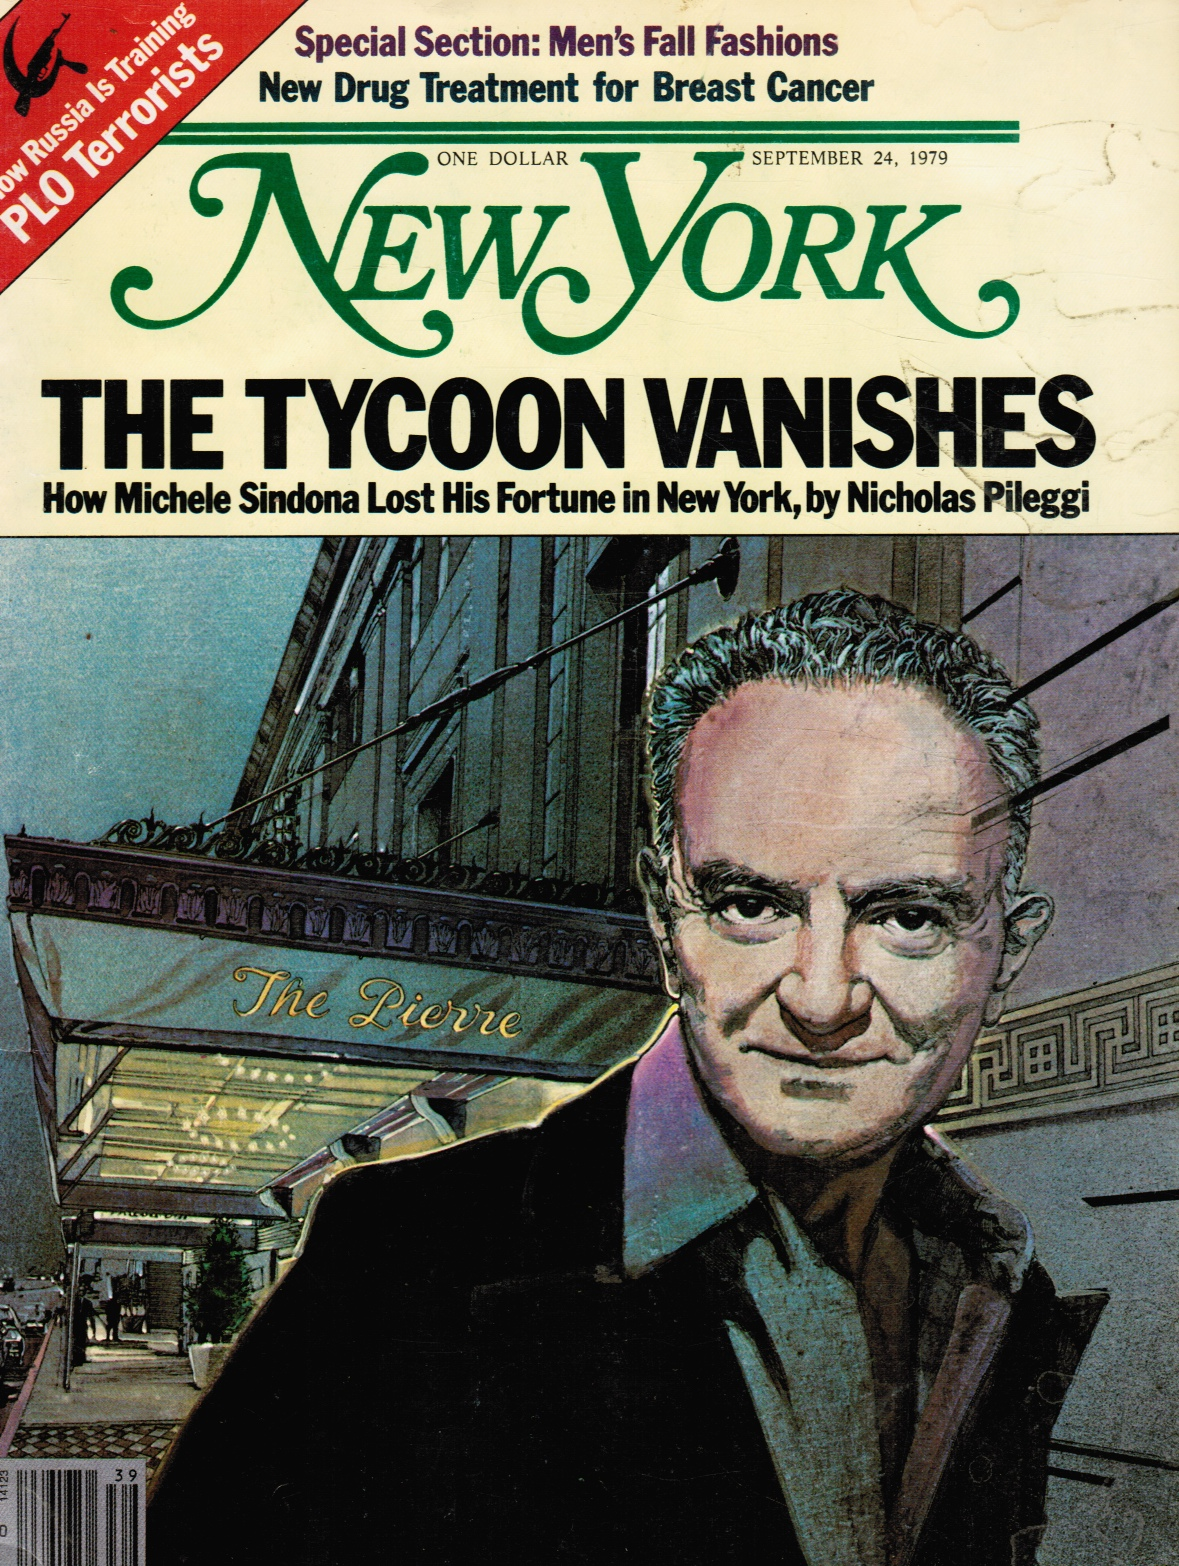 Image for 1979: New York Magazine - September 24, 1979